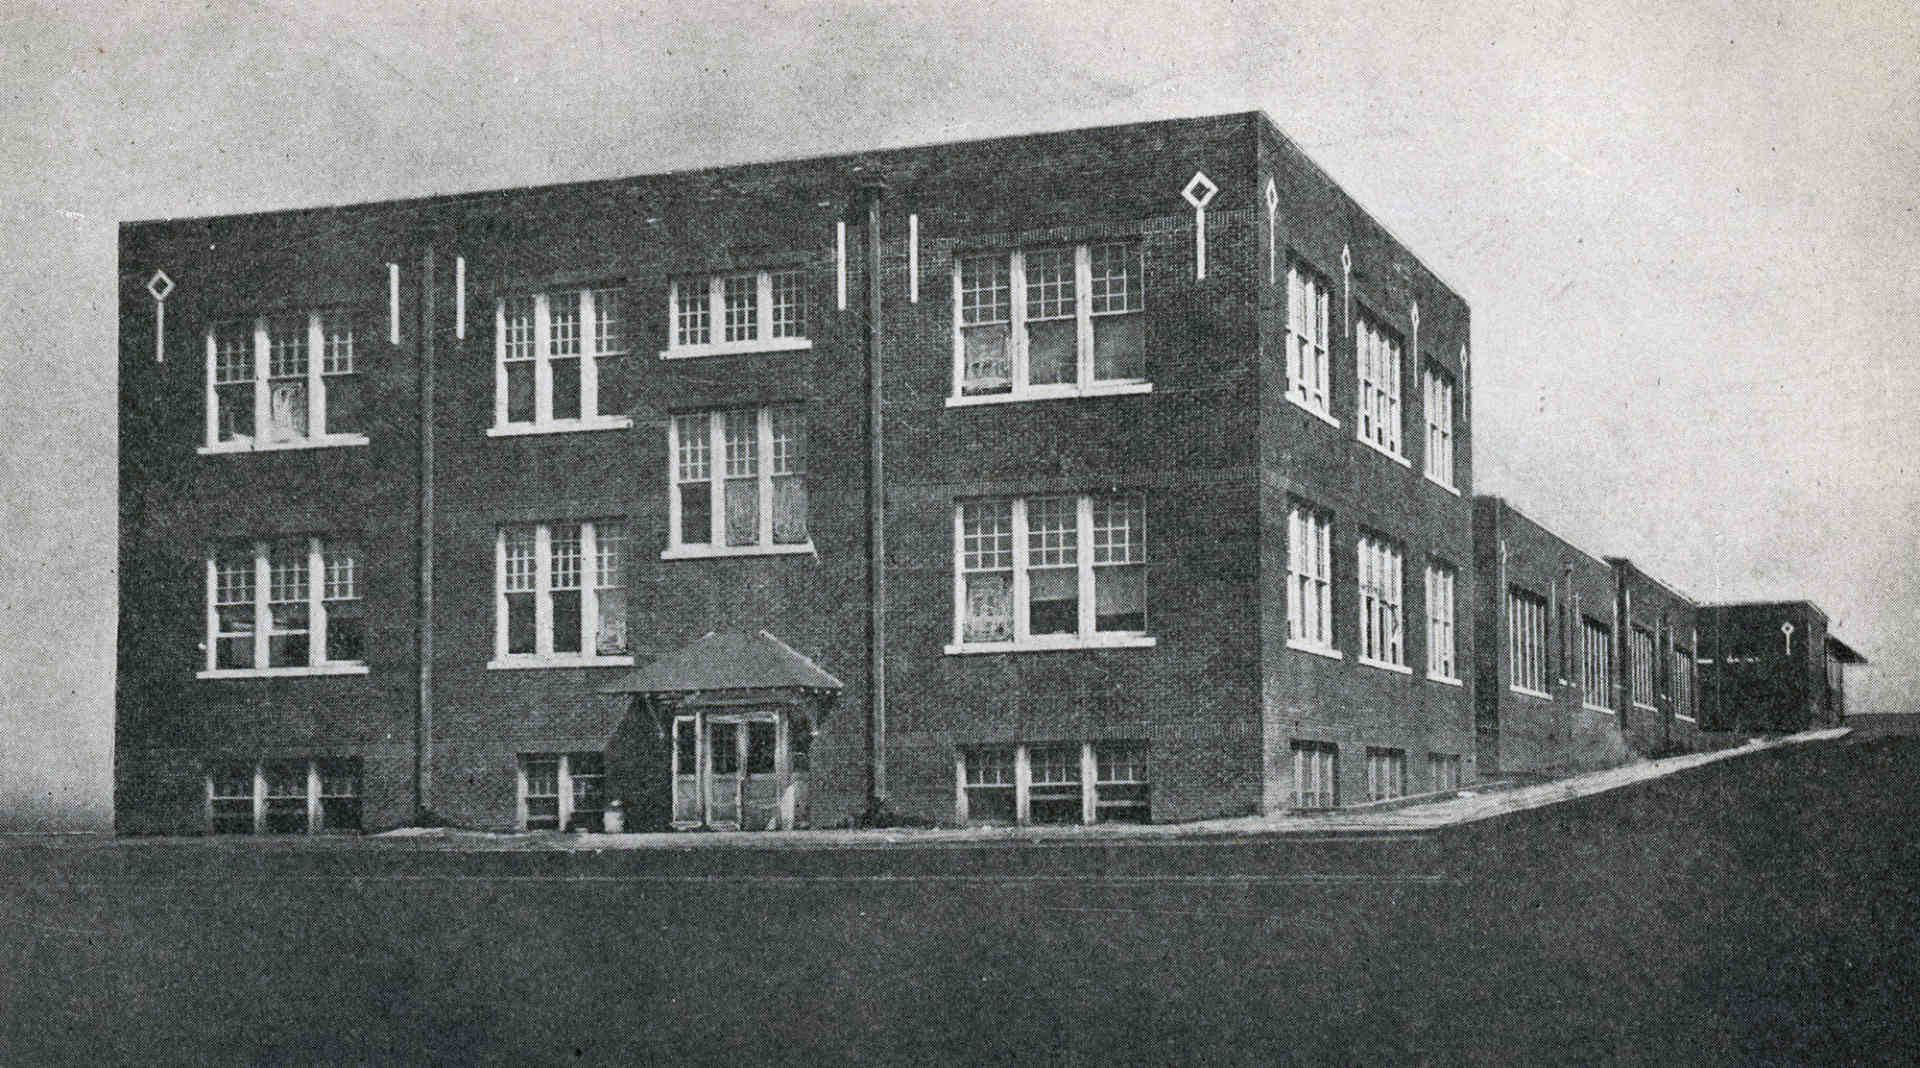 Booker T. Washington High School in the Greenwood District, 1920 [Source: OHS].